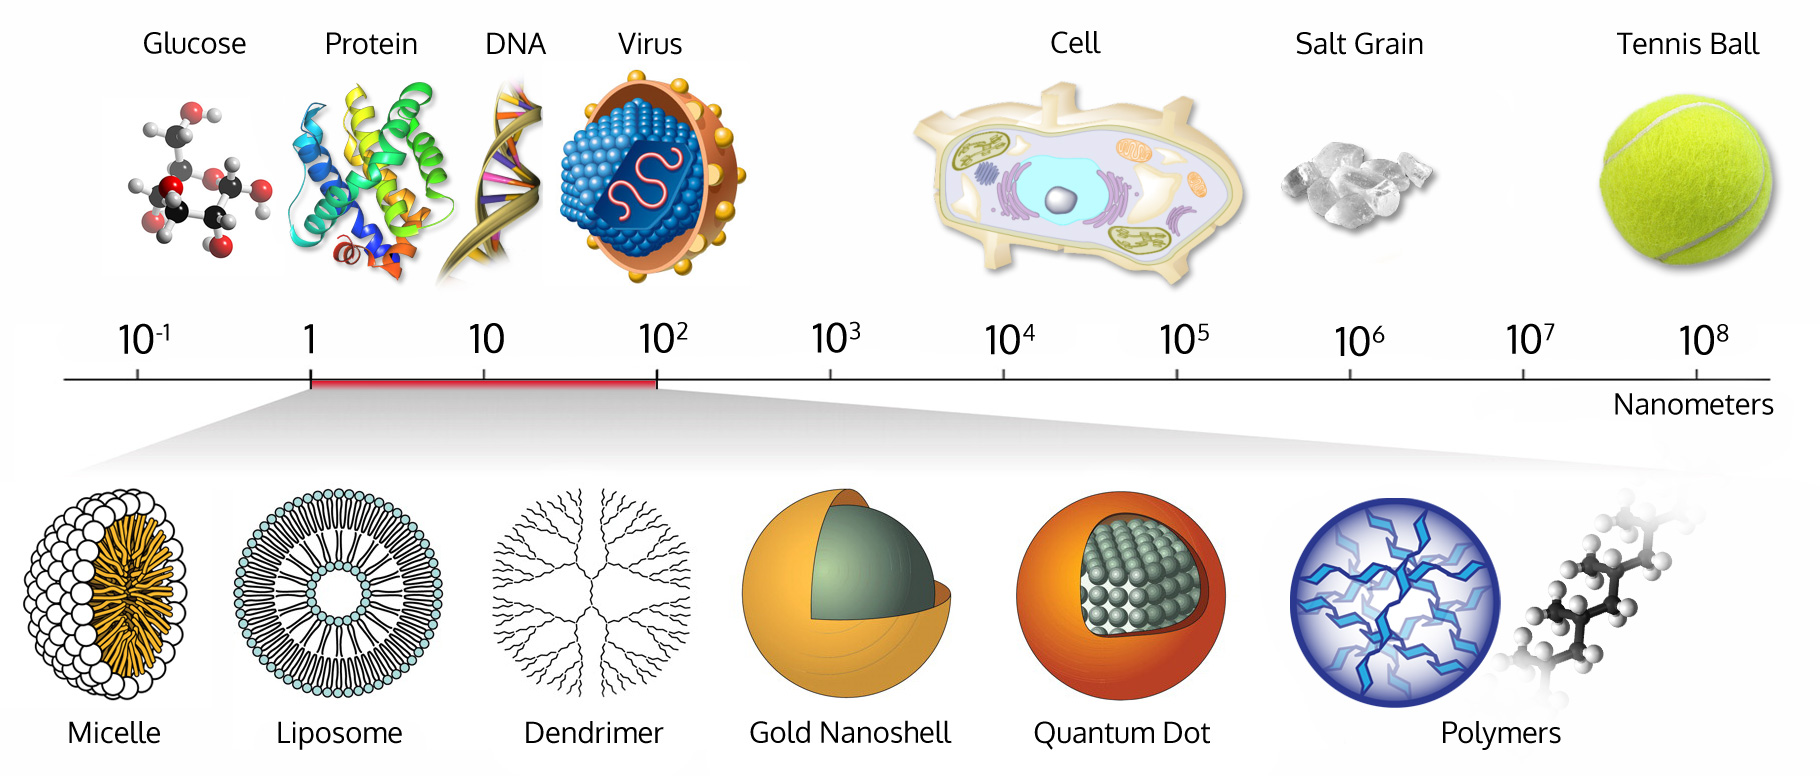 nanometer scale comparison nanoparticle size comparison nanotechnology chart ruler